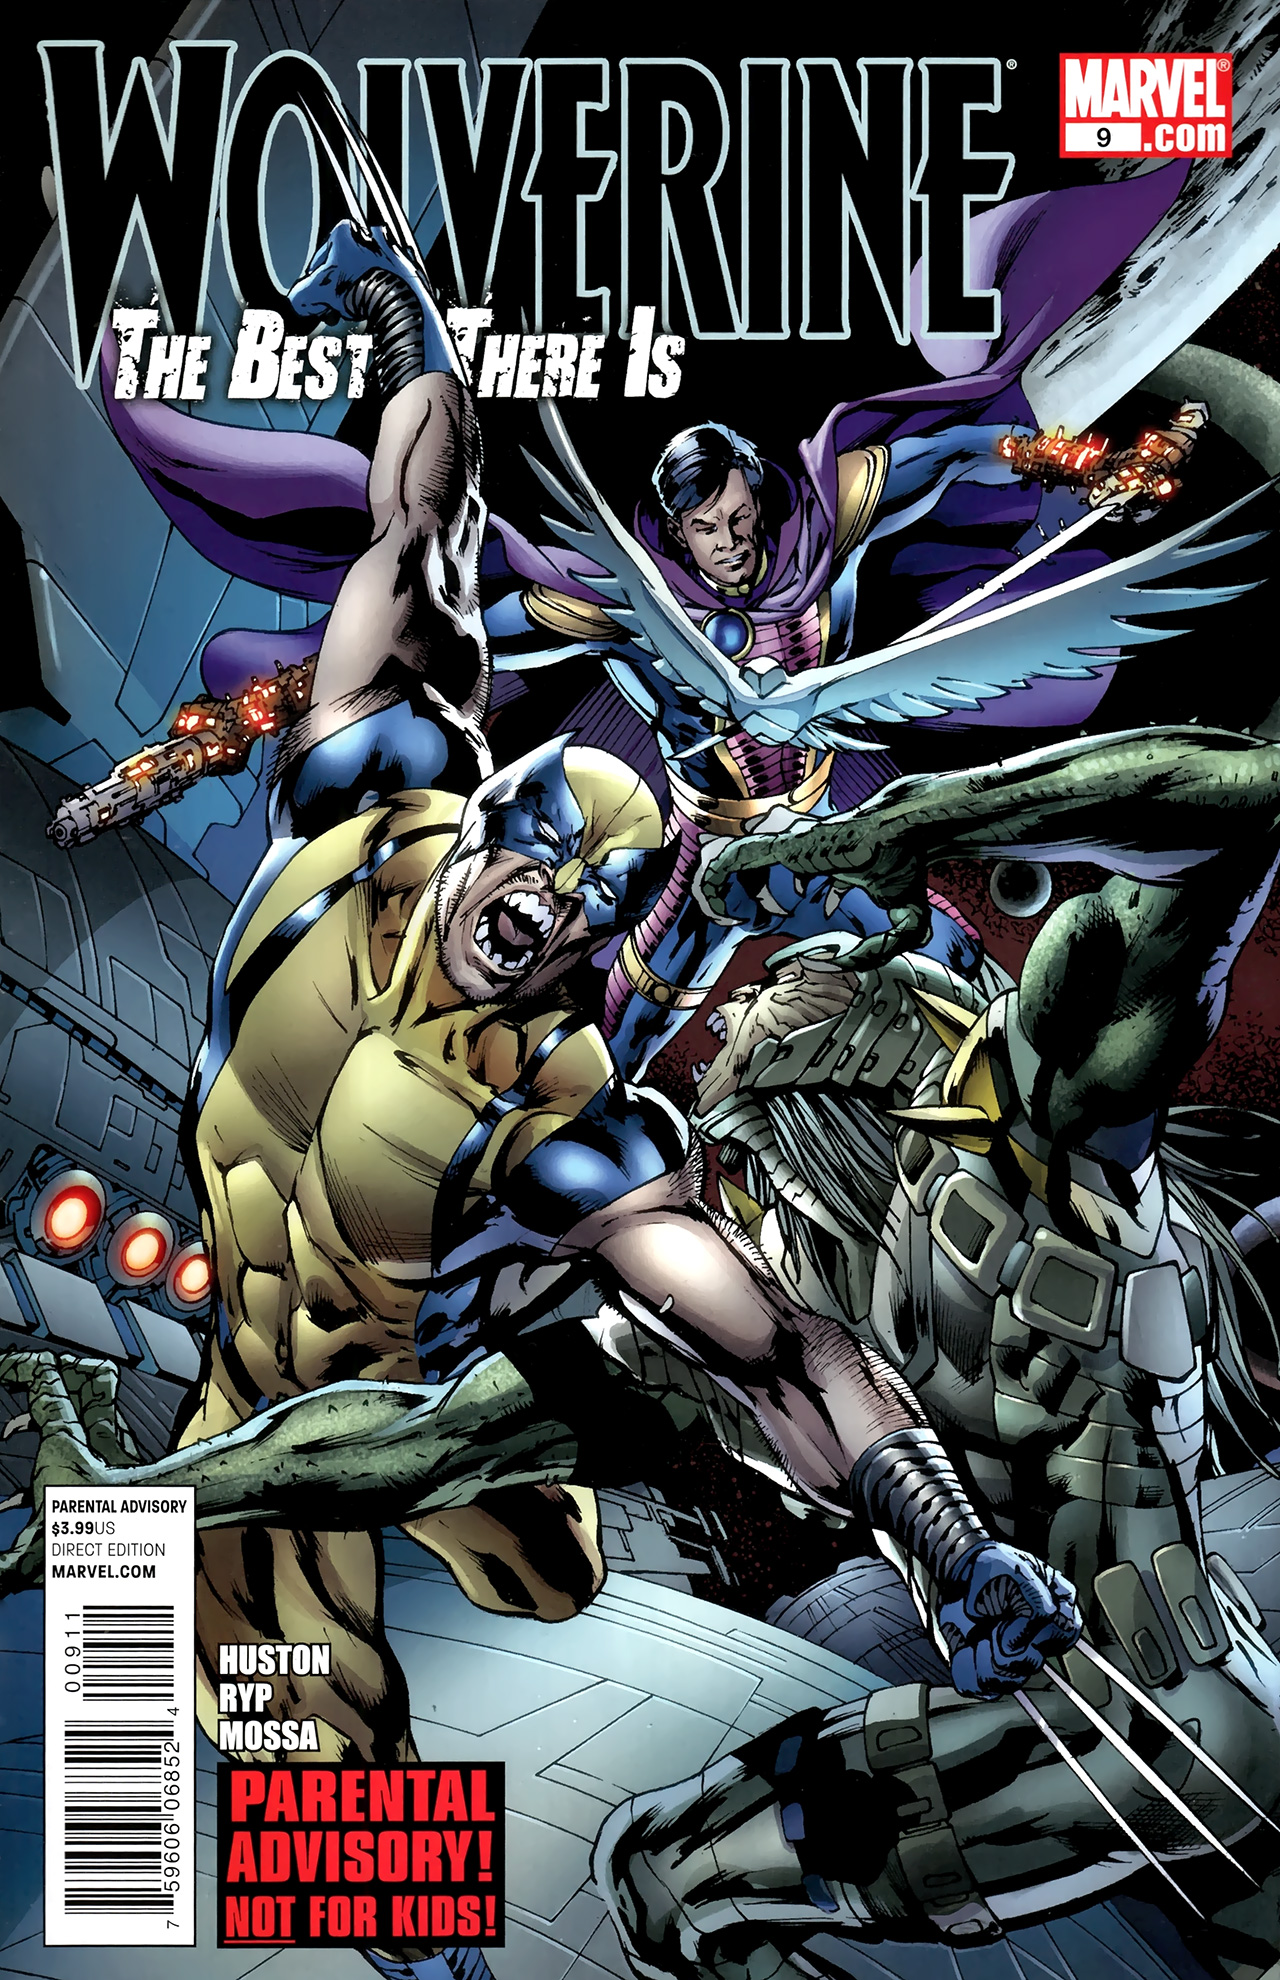 Read online Wolverine: The Best There Is comic -  Issue #9 - 1